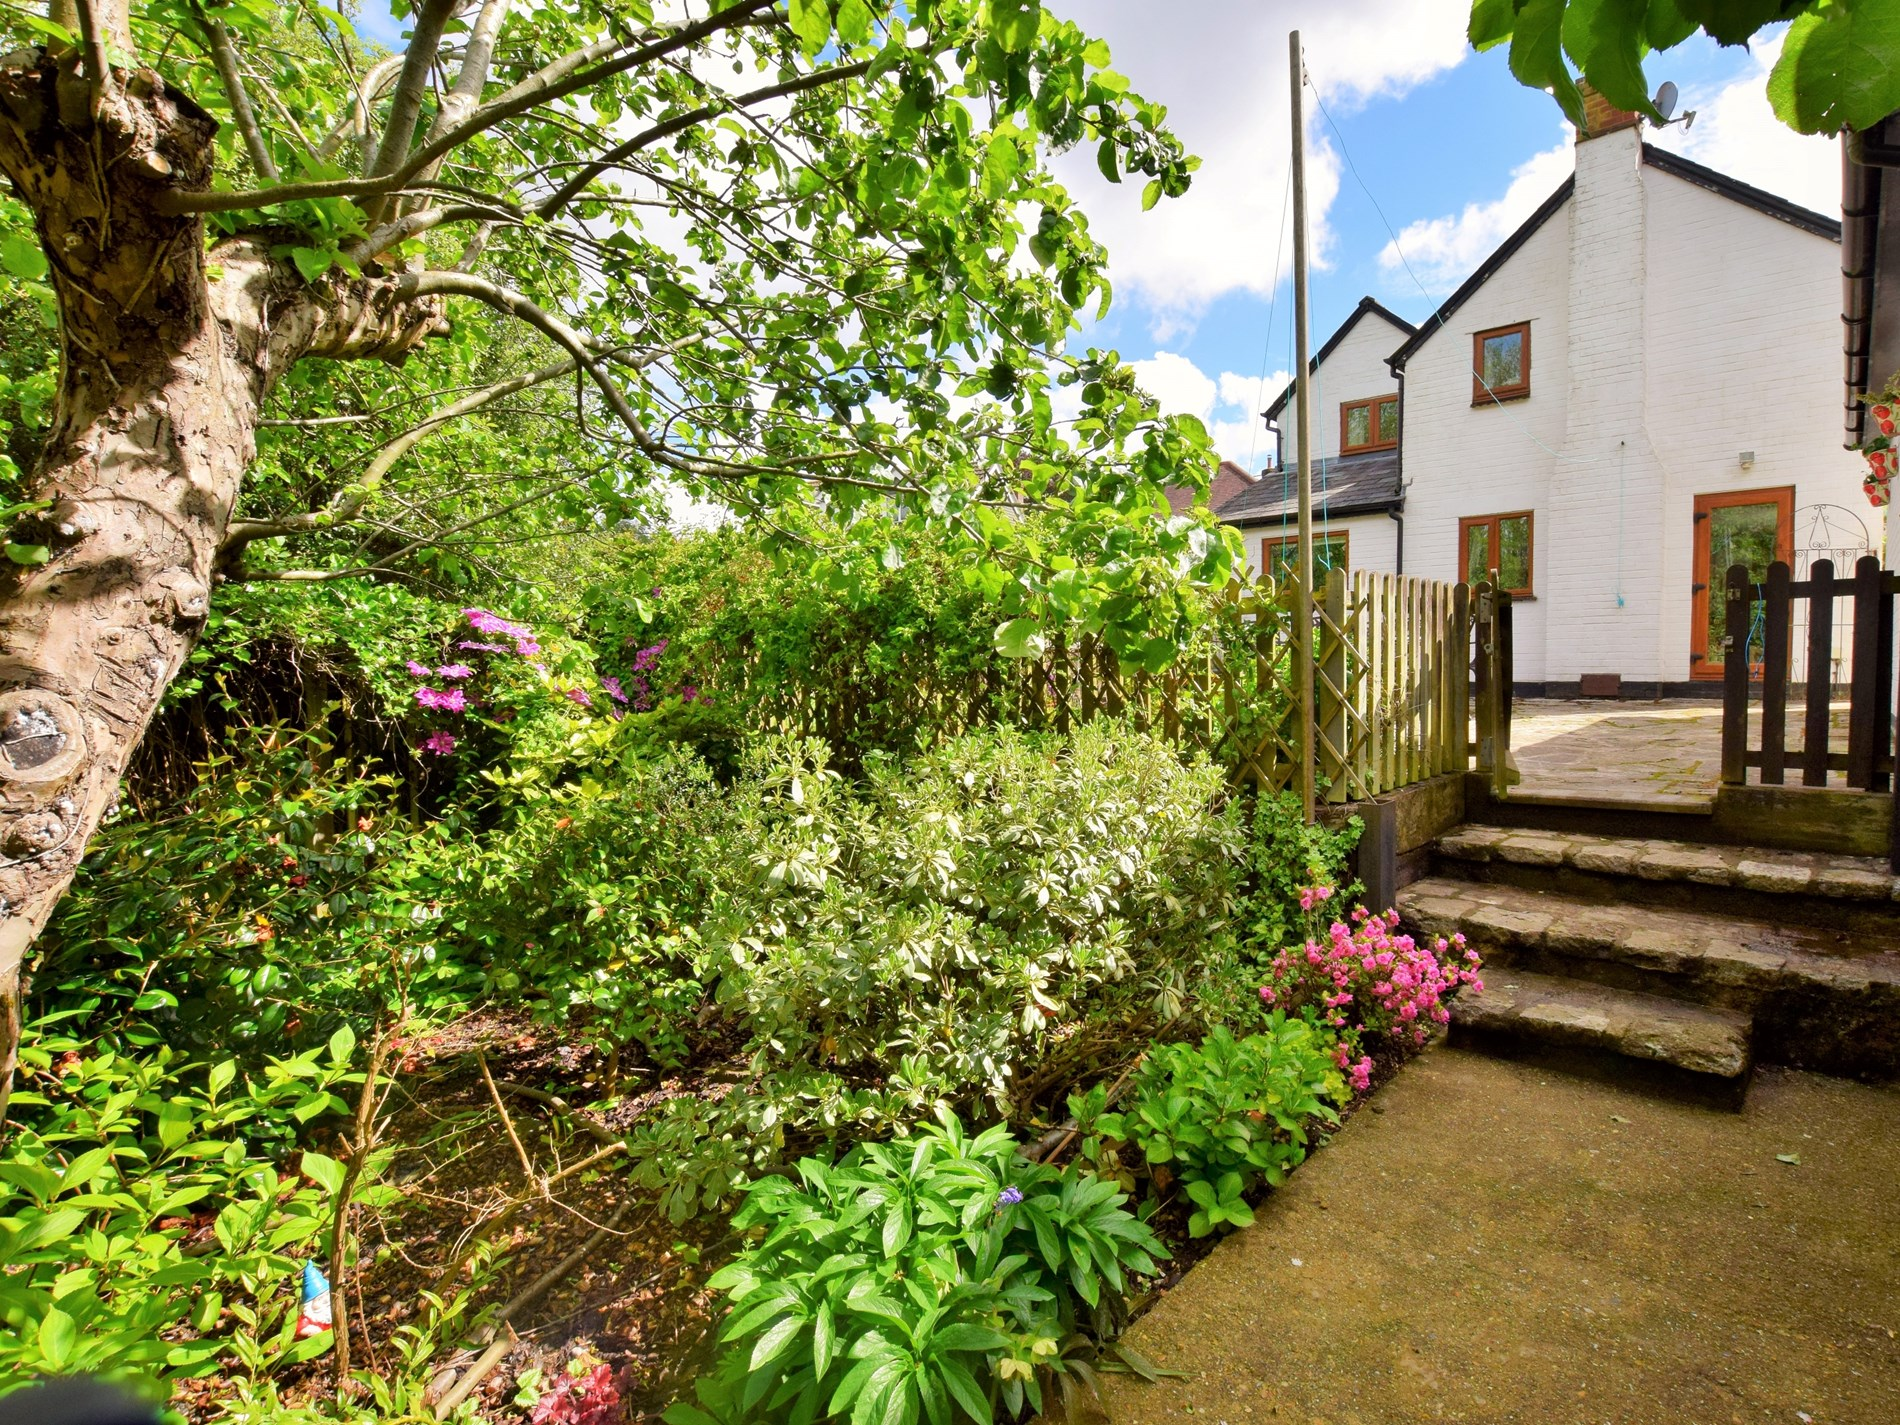 View towards the cottage from the garden area